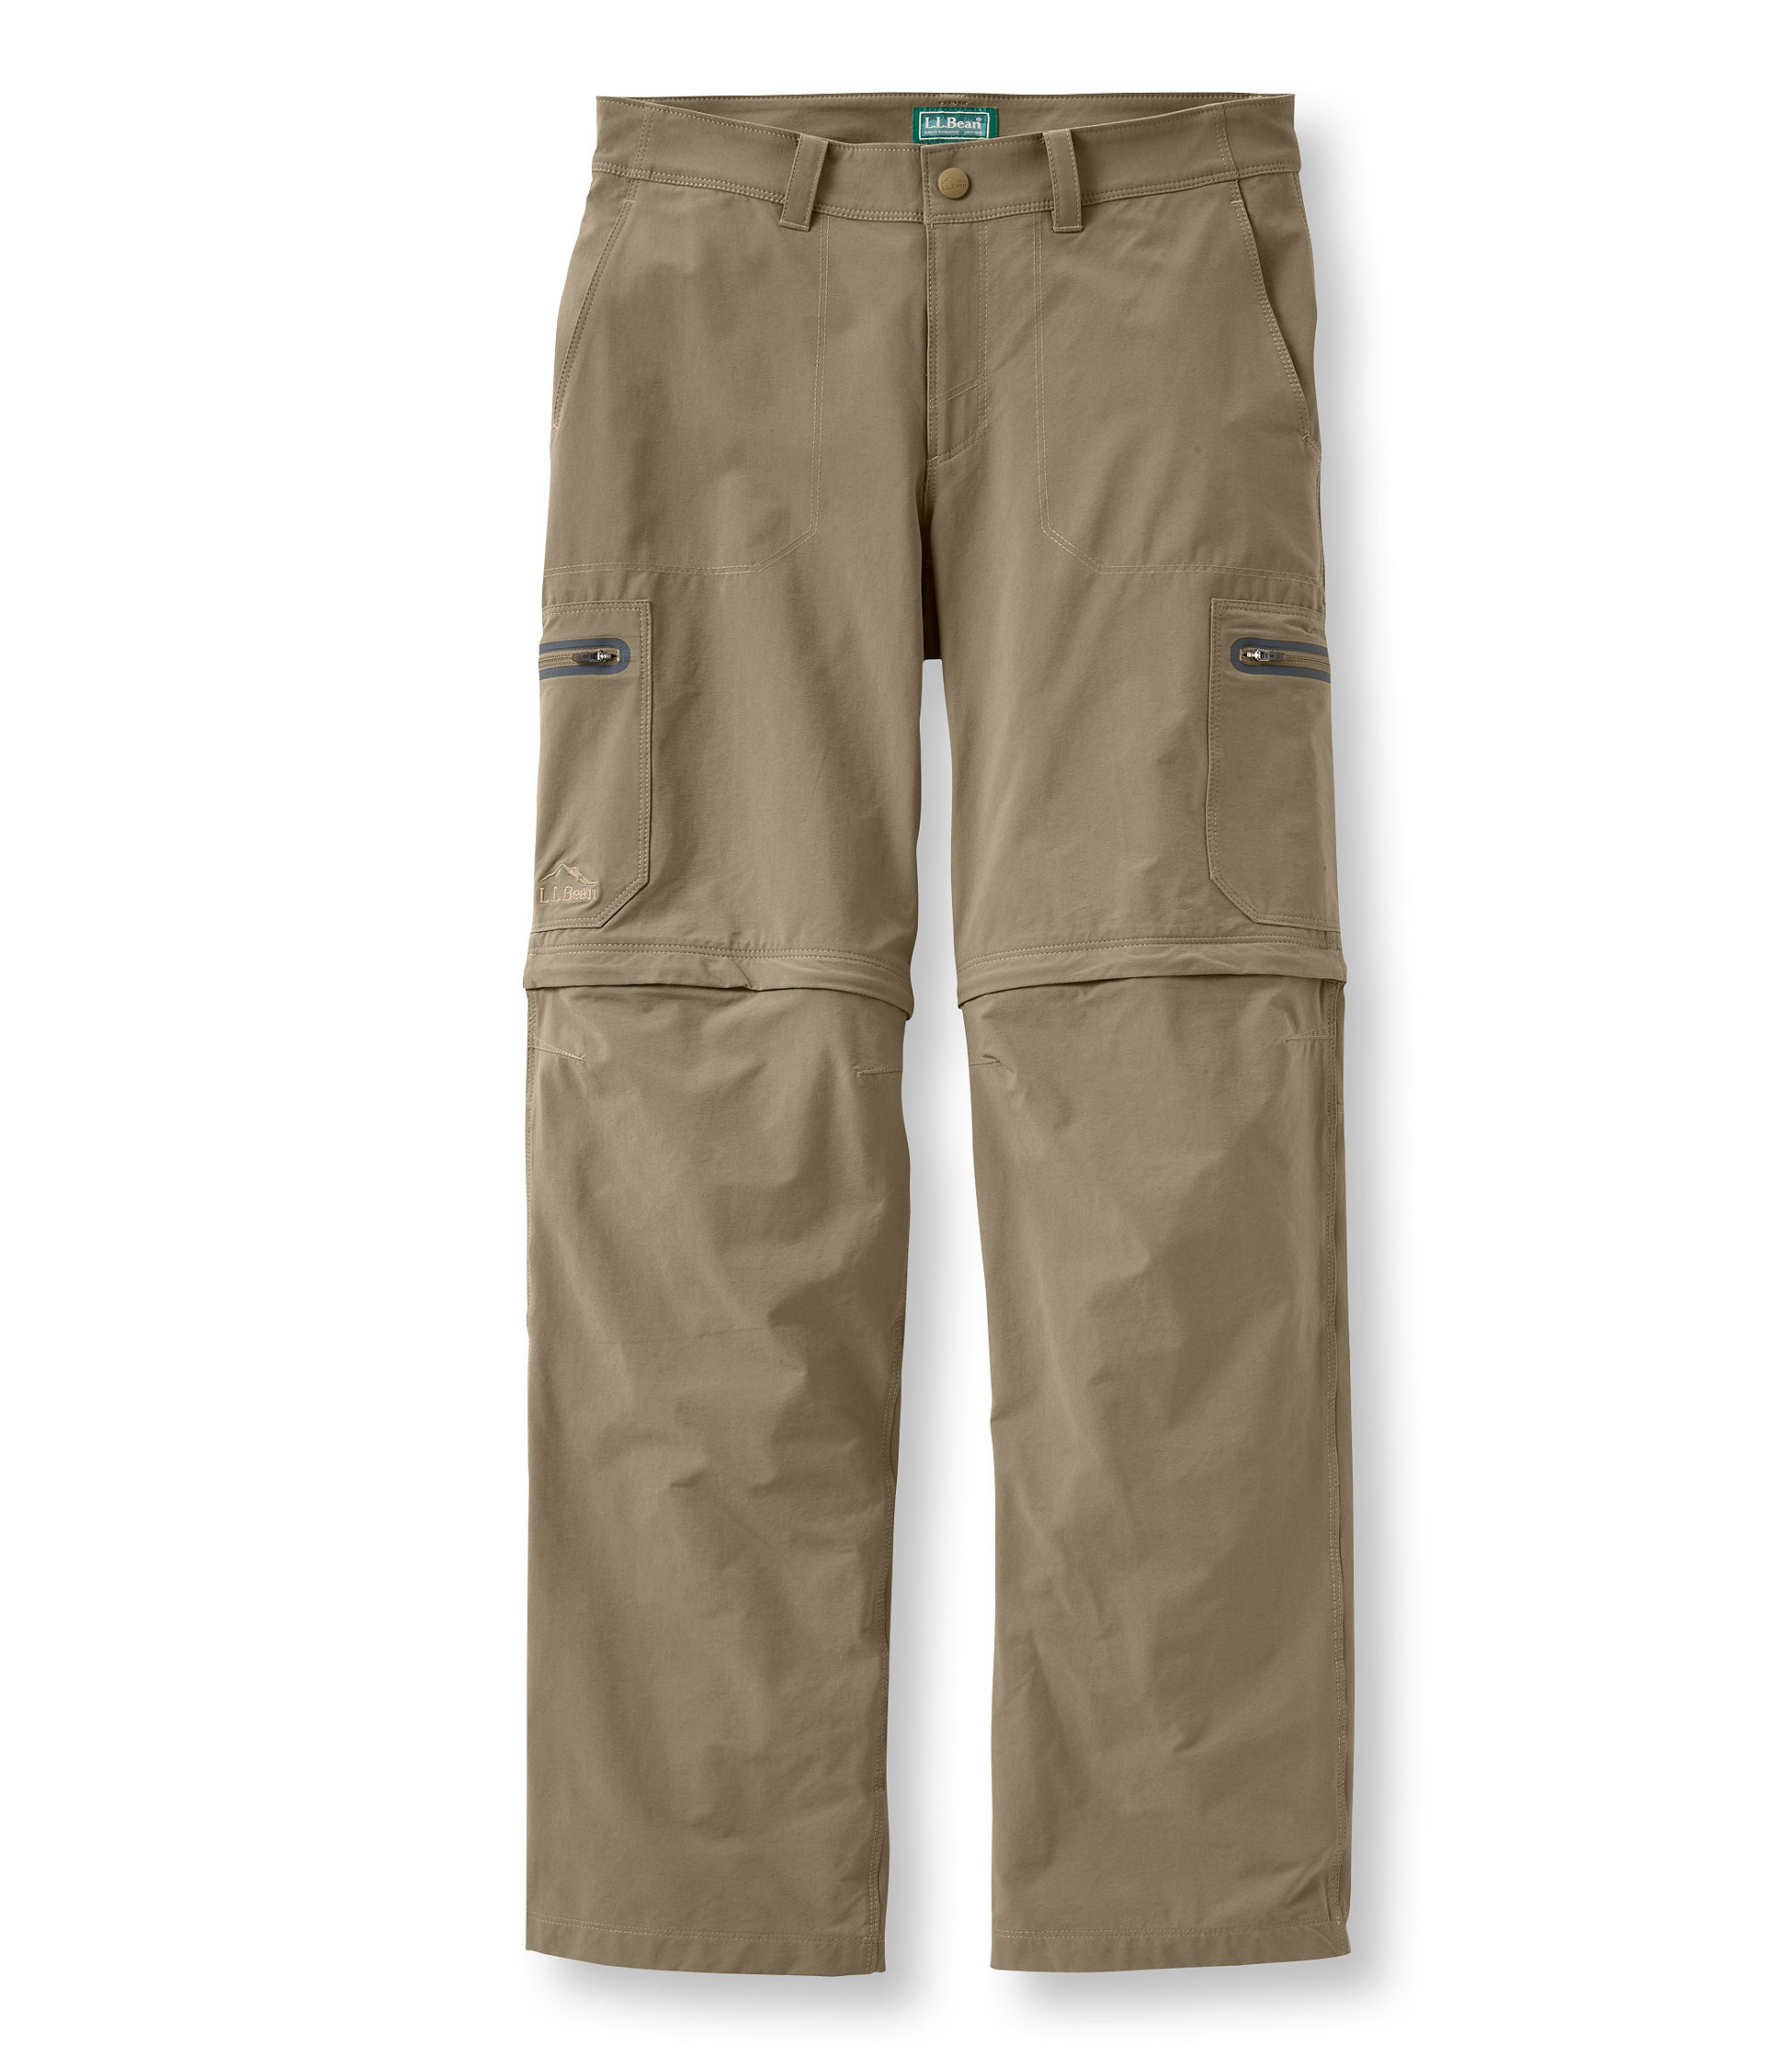 L.L.Bean Cresta Hiking Pants